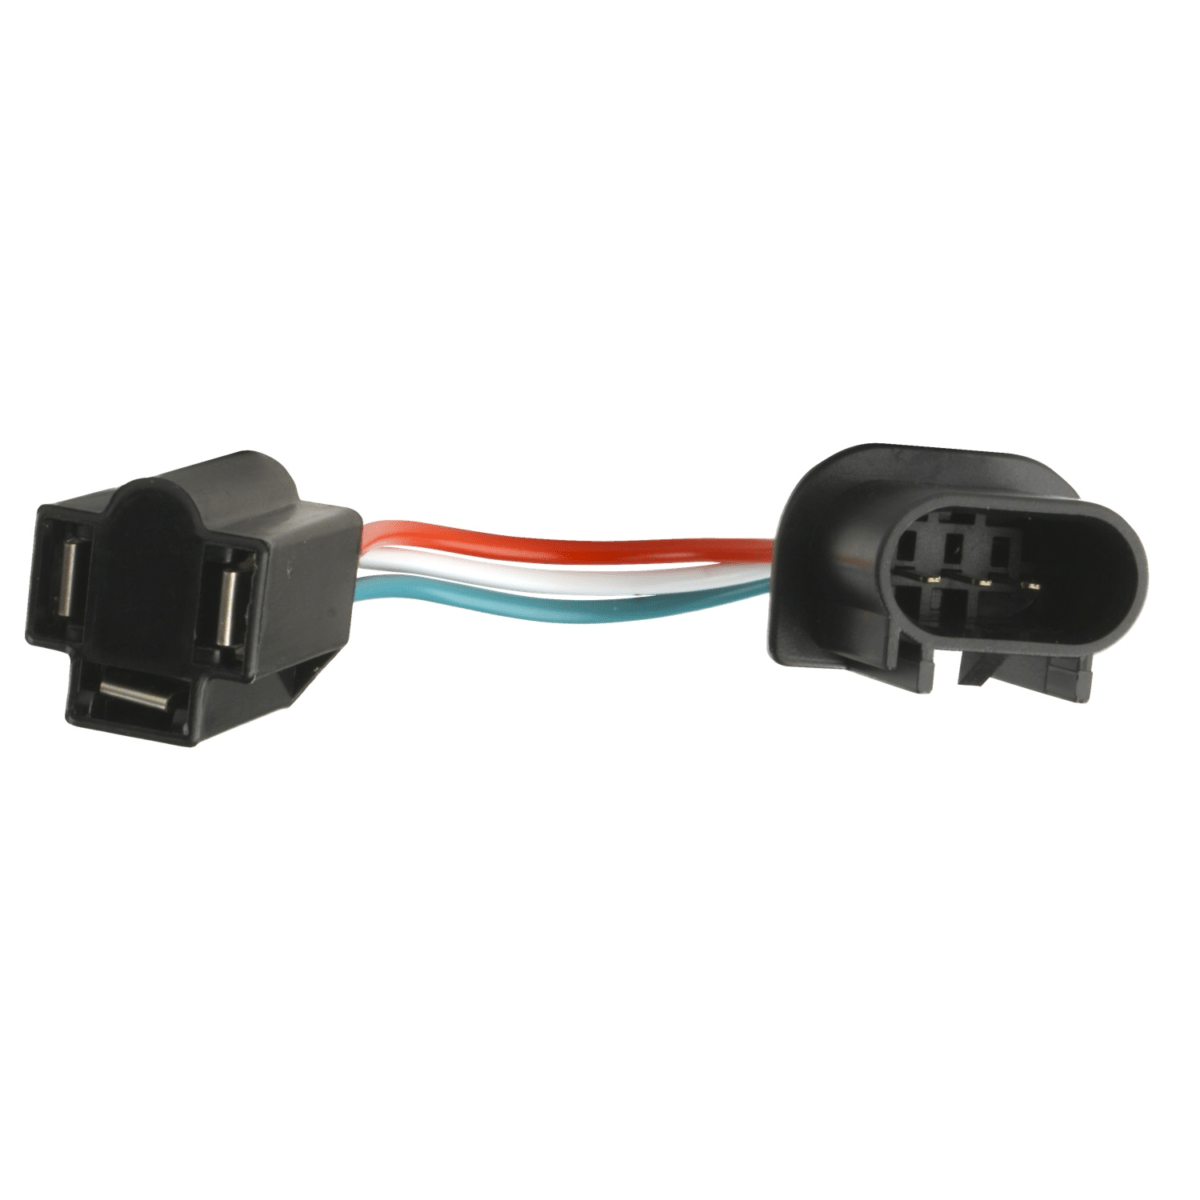 H13 to H4 Headlight Wiring Adapter | HID Kit Pros H Wiring Harness on h13 hid wiring, h13 plug harness, hid kit headlight harness,